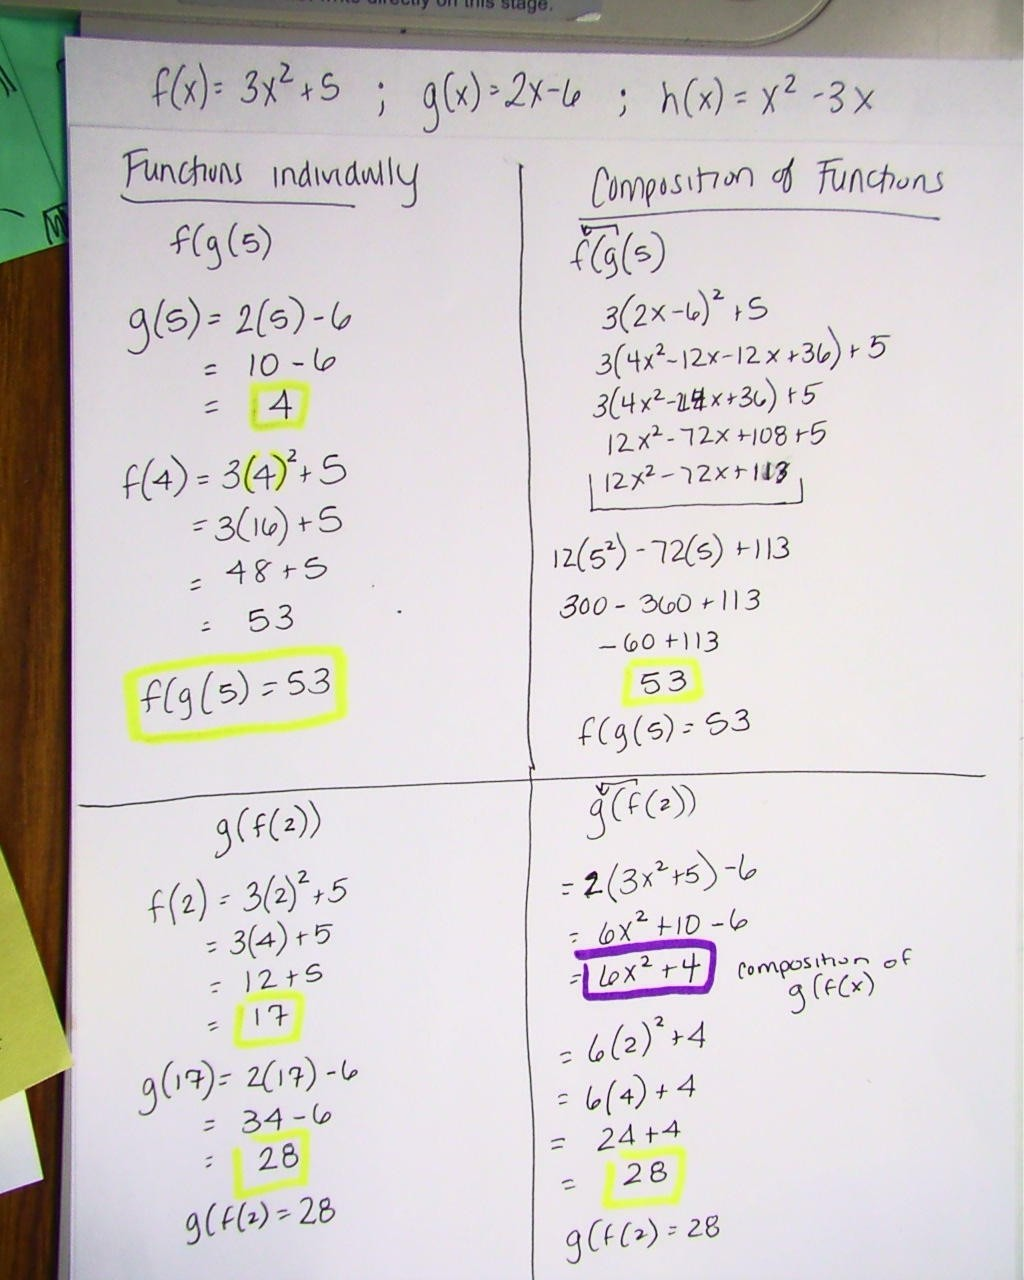 ... Composition of Functions